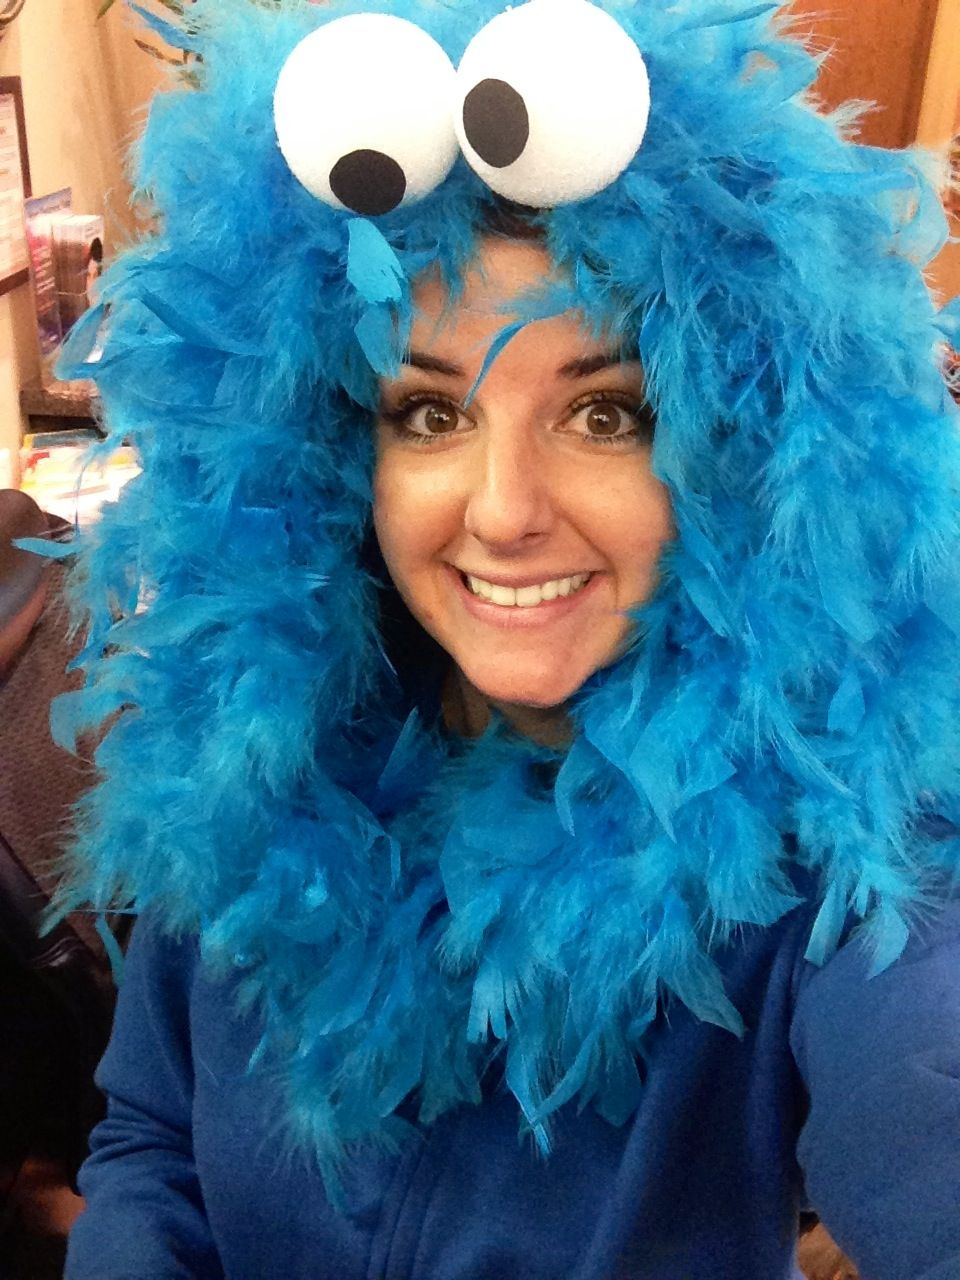 theretroinc on etsy | marcie | pinterest | halloween costumes